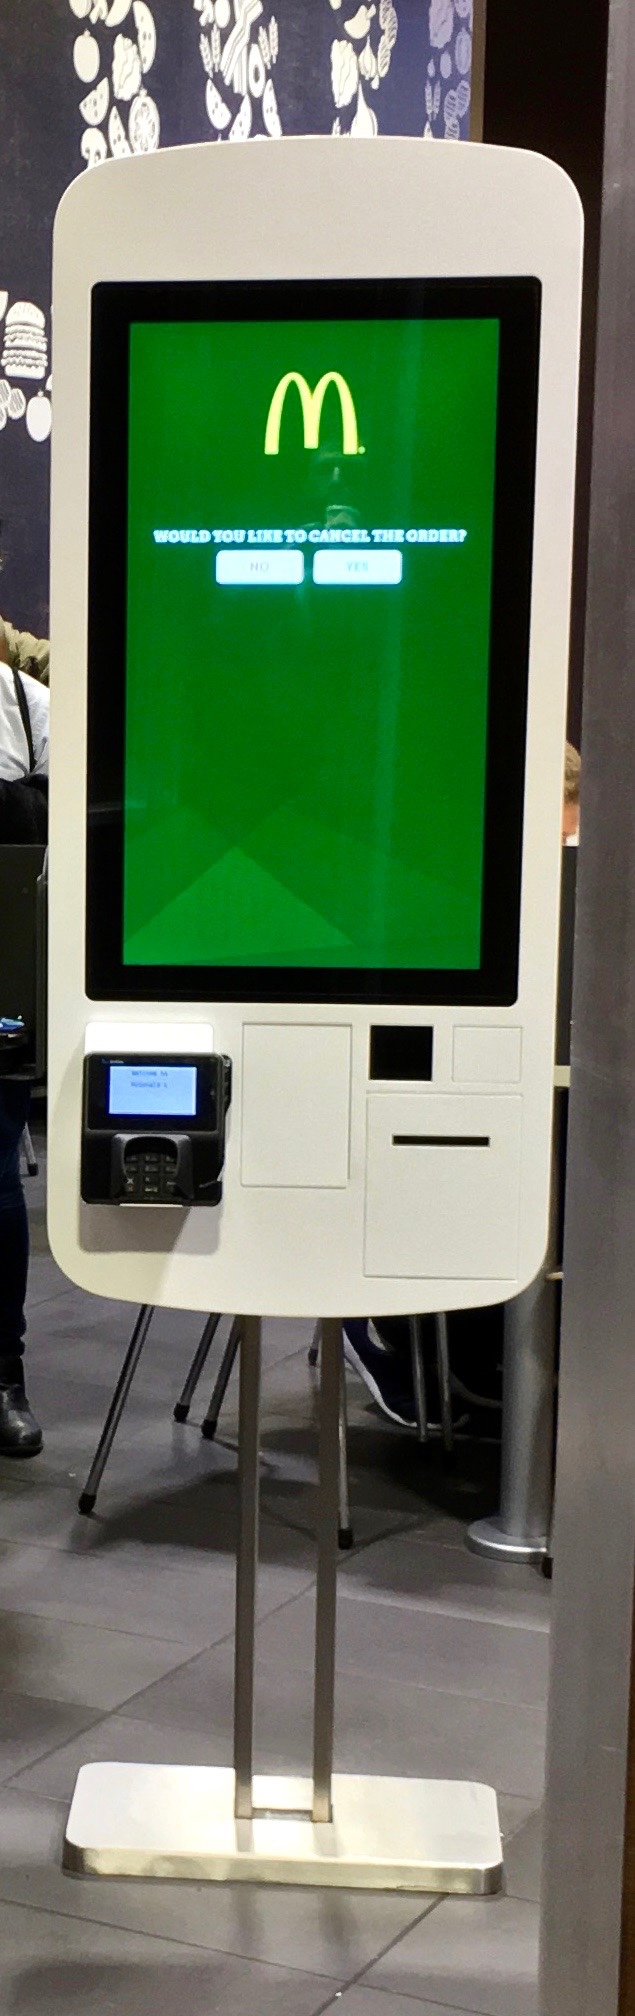 create your own burger order machine at McCafe